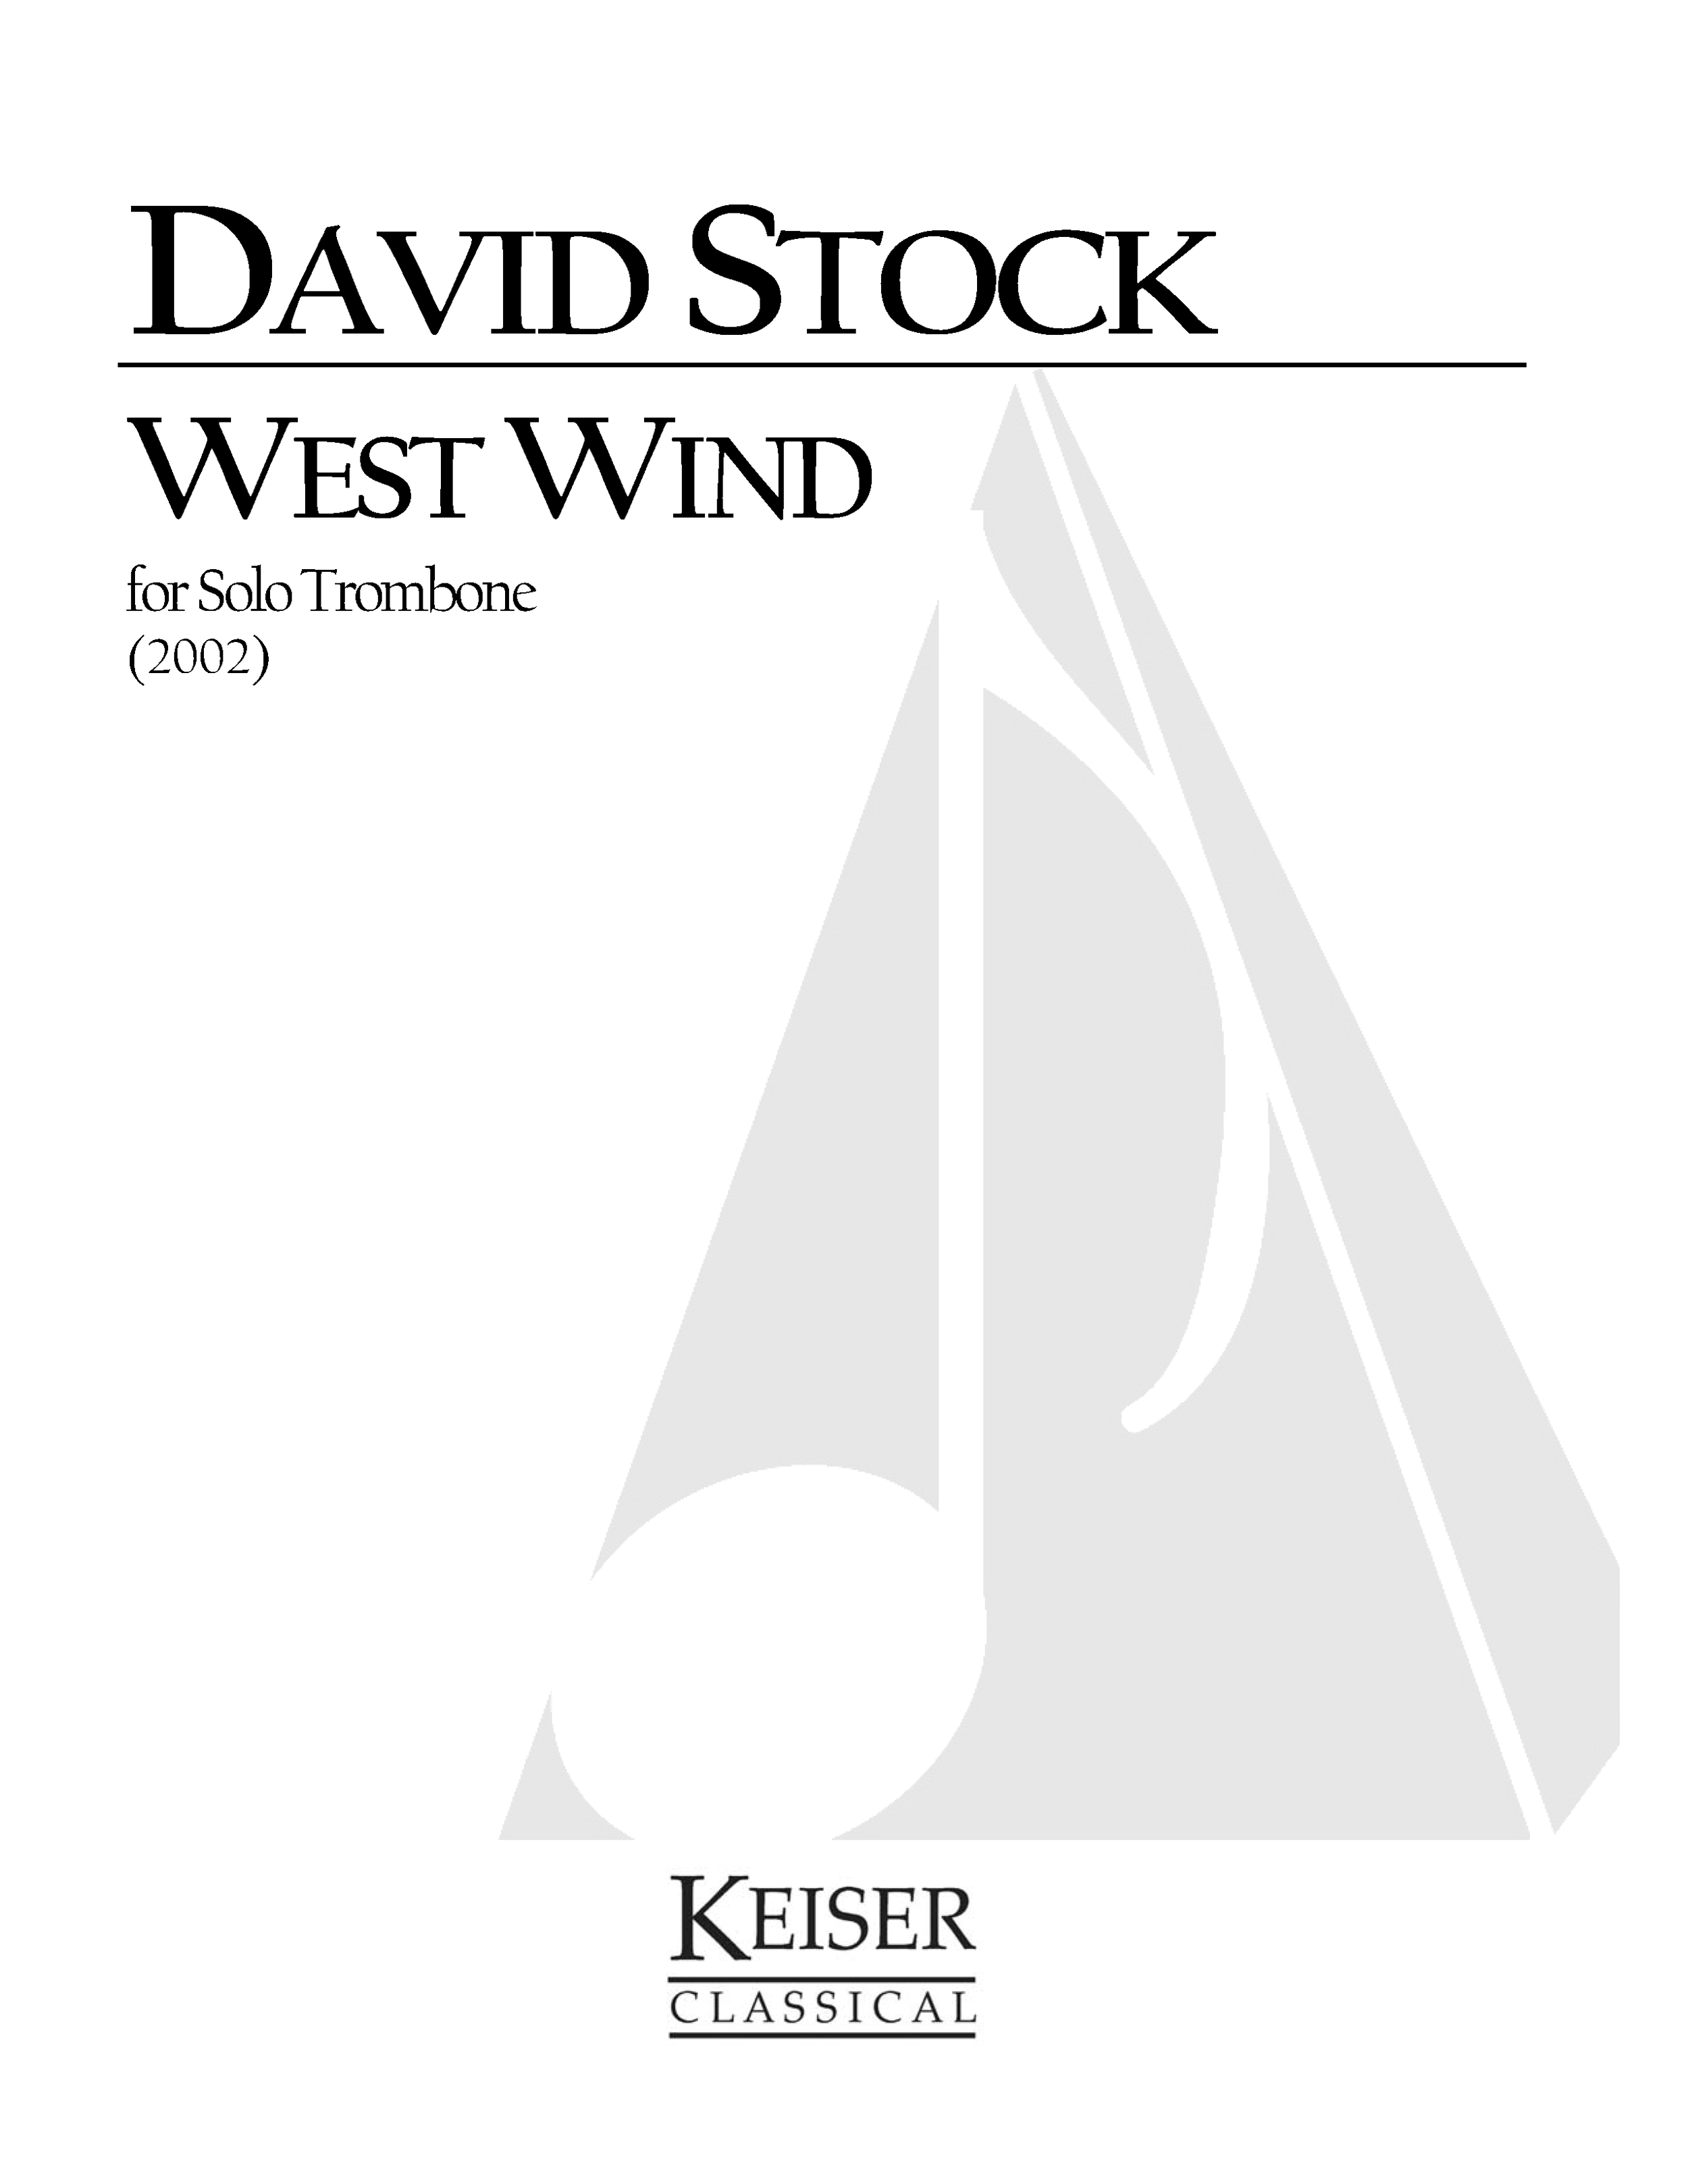 West Wind (2002)  - Solo TromboneRent/Buy: Keiser Music